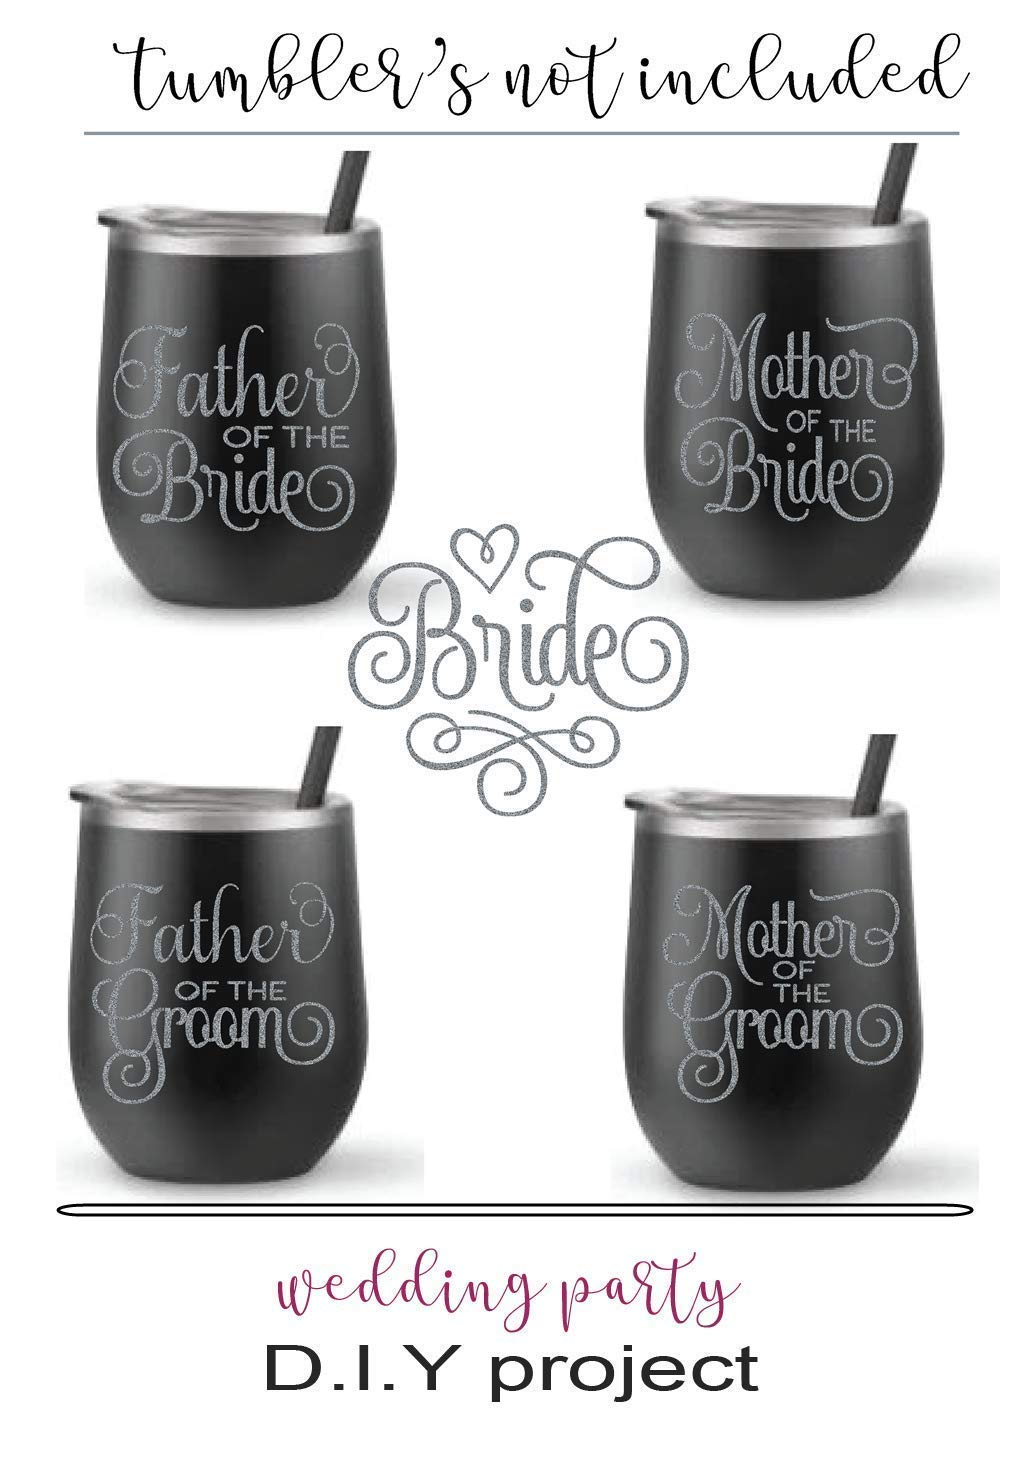 "Wedding Set of (4) FOUR Vinyl Graphic Decal Stickers, 3""W x 2.5""H each - (1) Mother Of The Bride, (1) Mother Of The Groom, (1) Father Of The Bride, (1) Father Of The Groom"